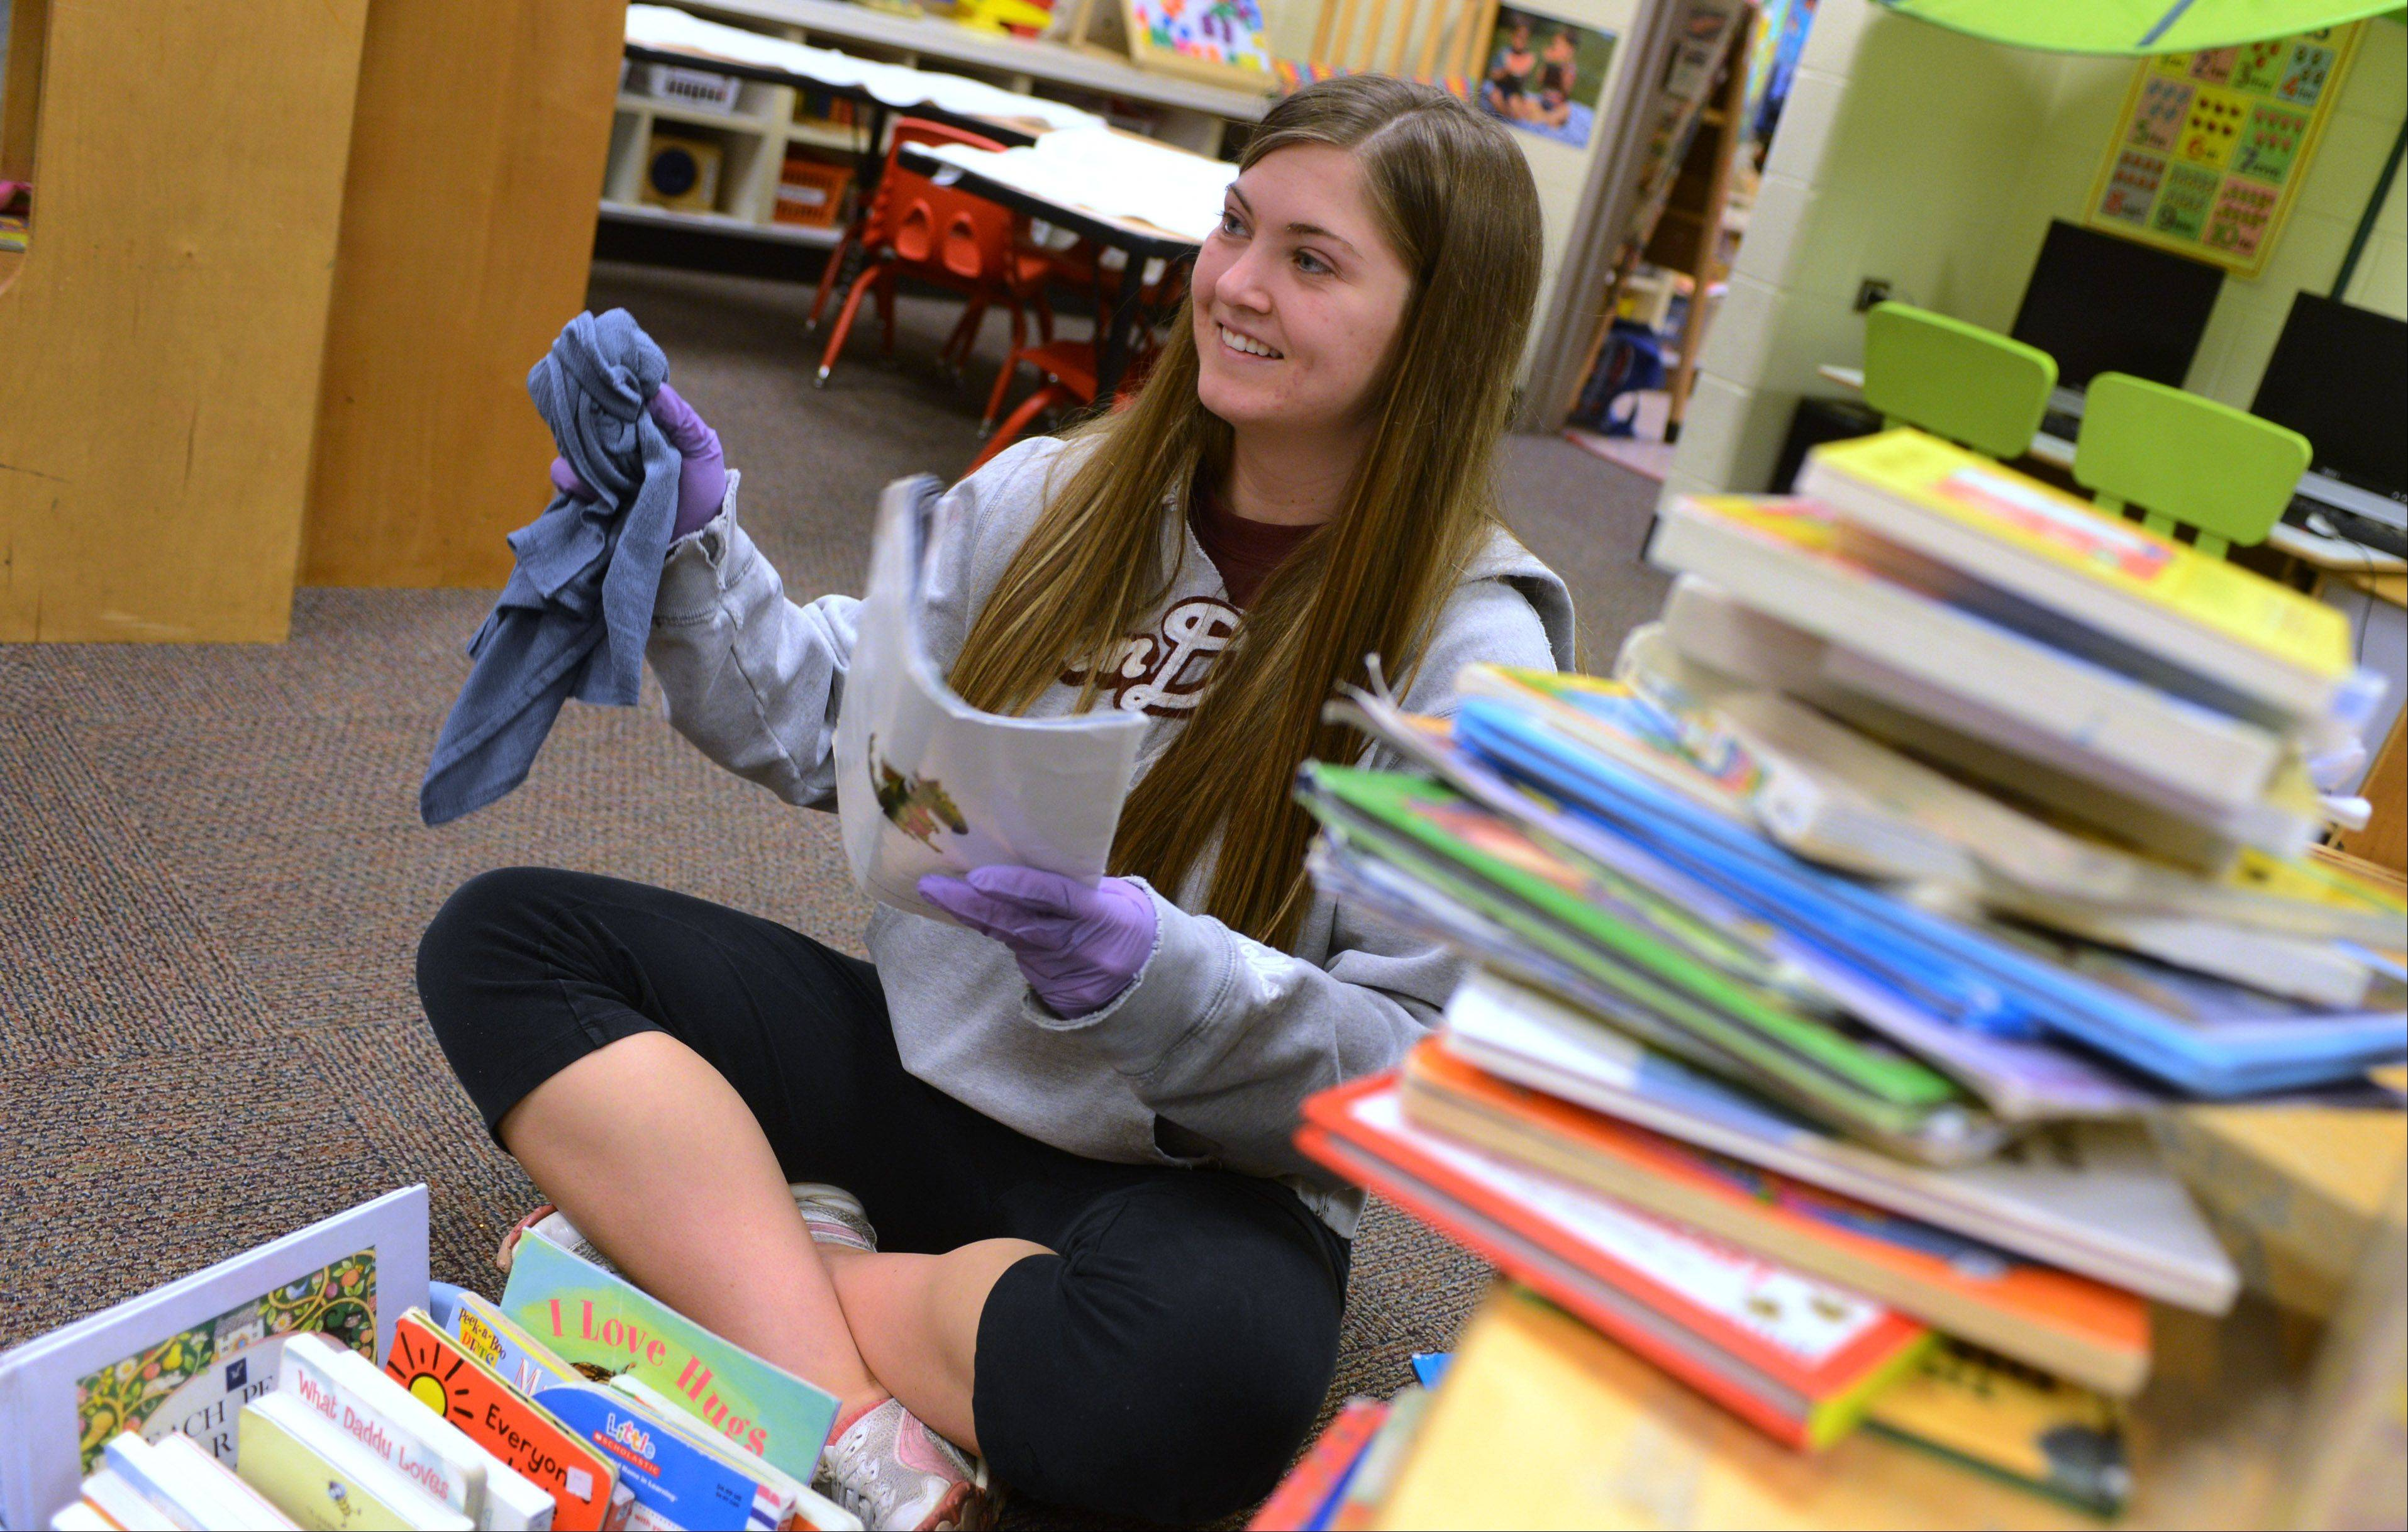 Antioch resident Katie Graziano wipes down books in the College of Lake County Children's Learning Center Saturday during the Make a Difference Day in Grayslake. Graziano is also a student at the college.